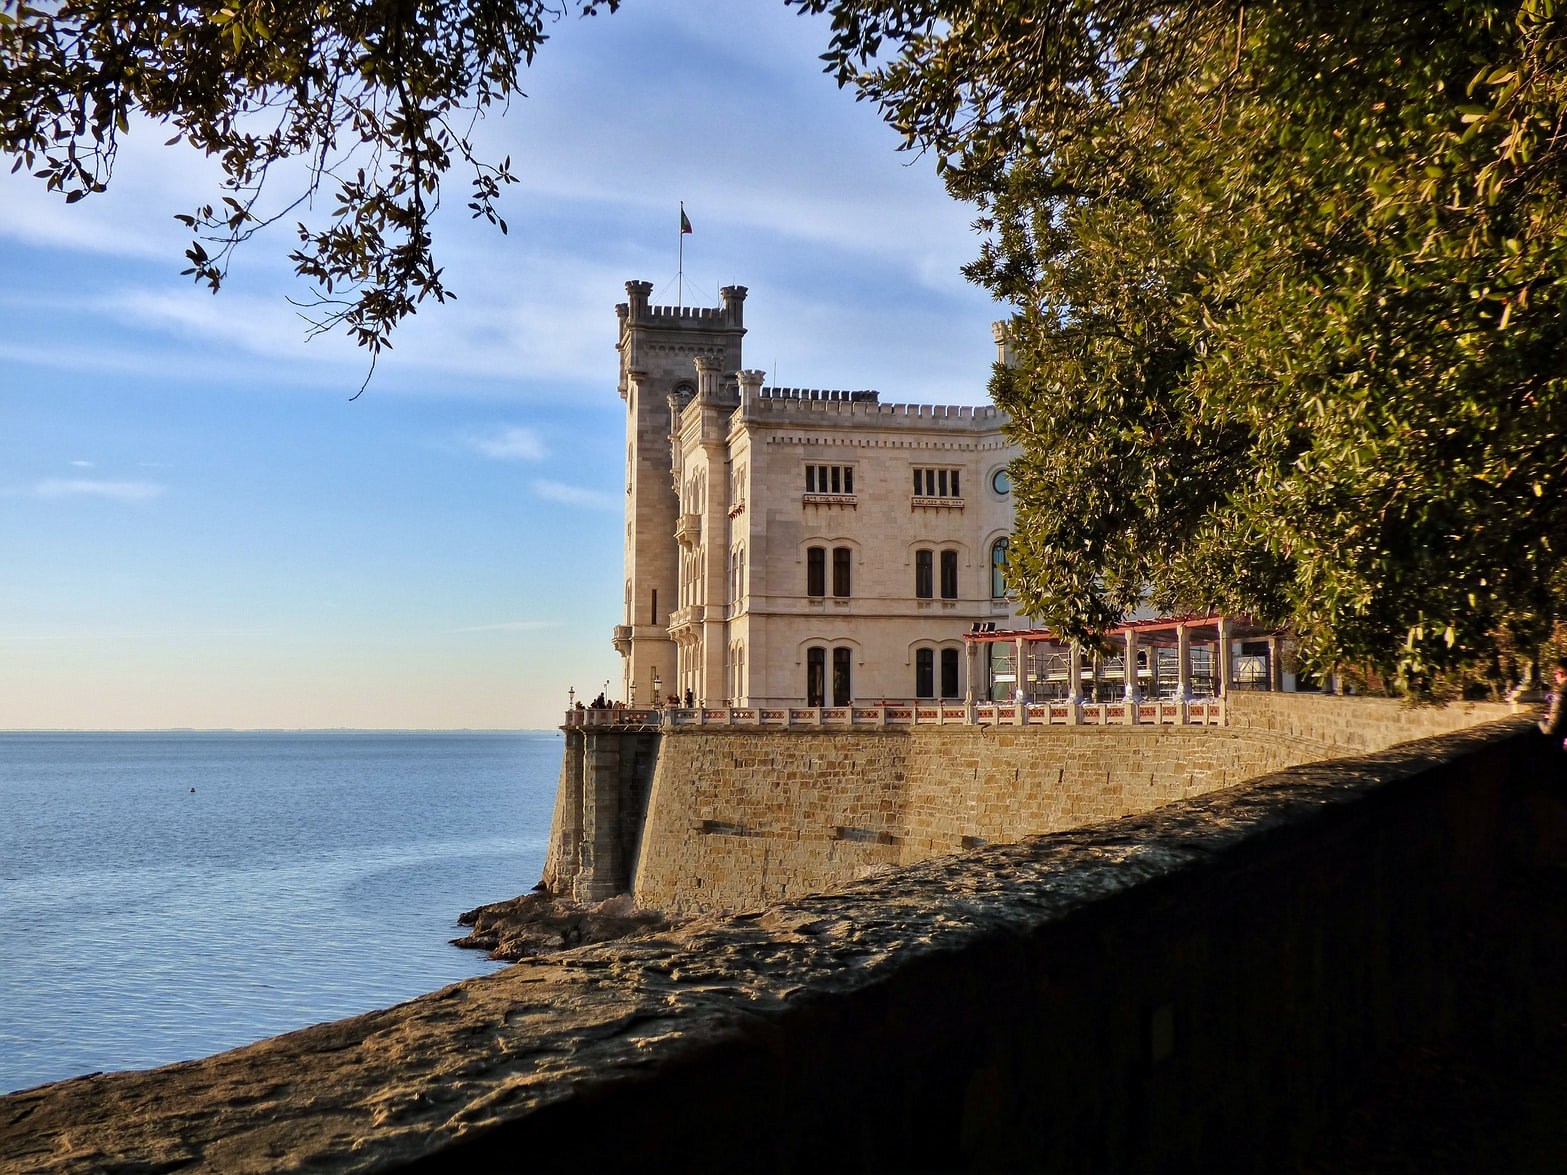 a building by the sea in Trieste, Italy